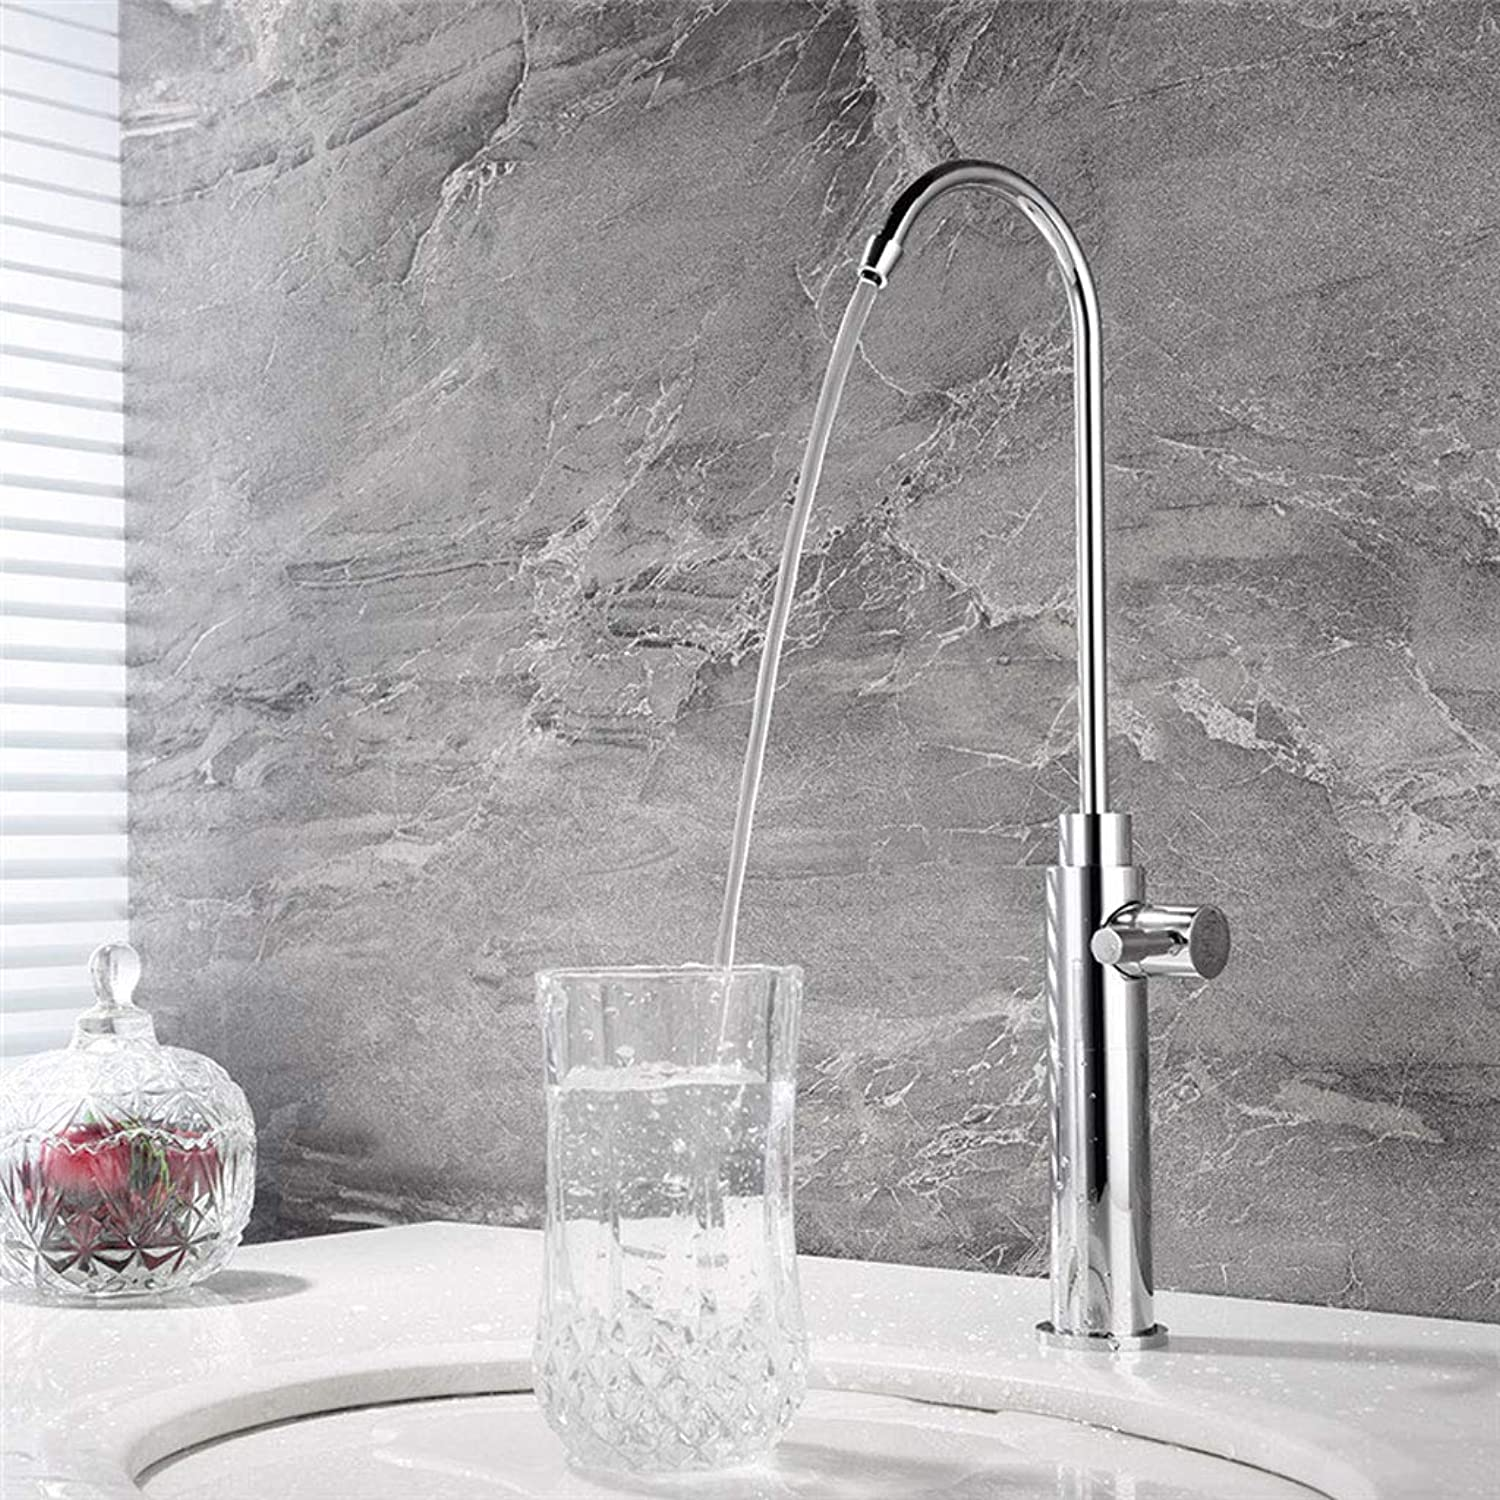 LXKY Drinking faucet - kitchen household copper single cold plus high water purifier faucet,C